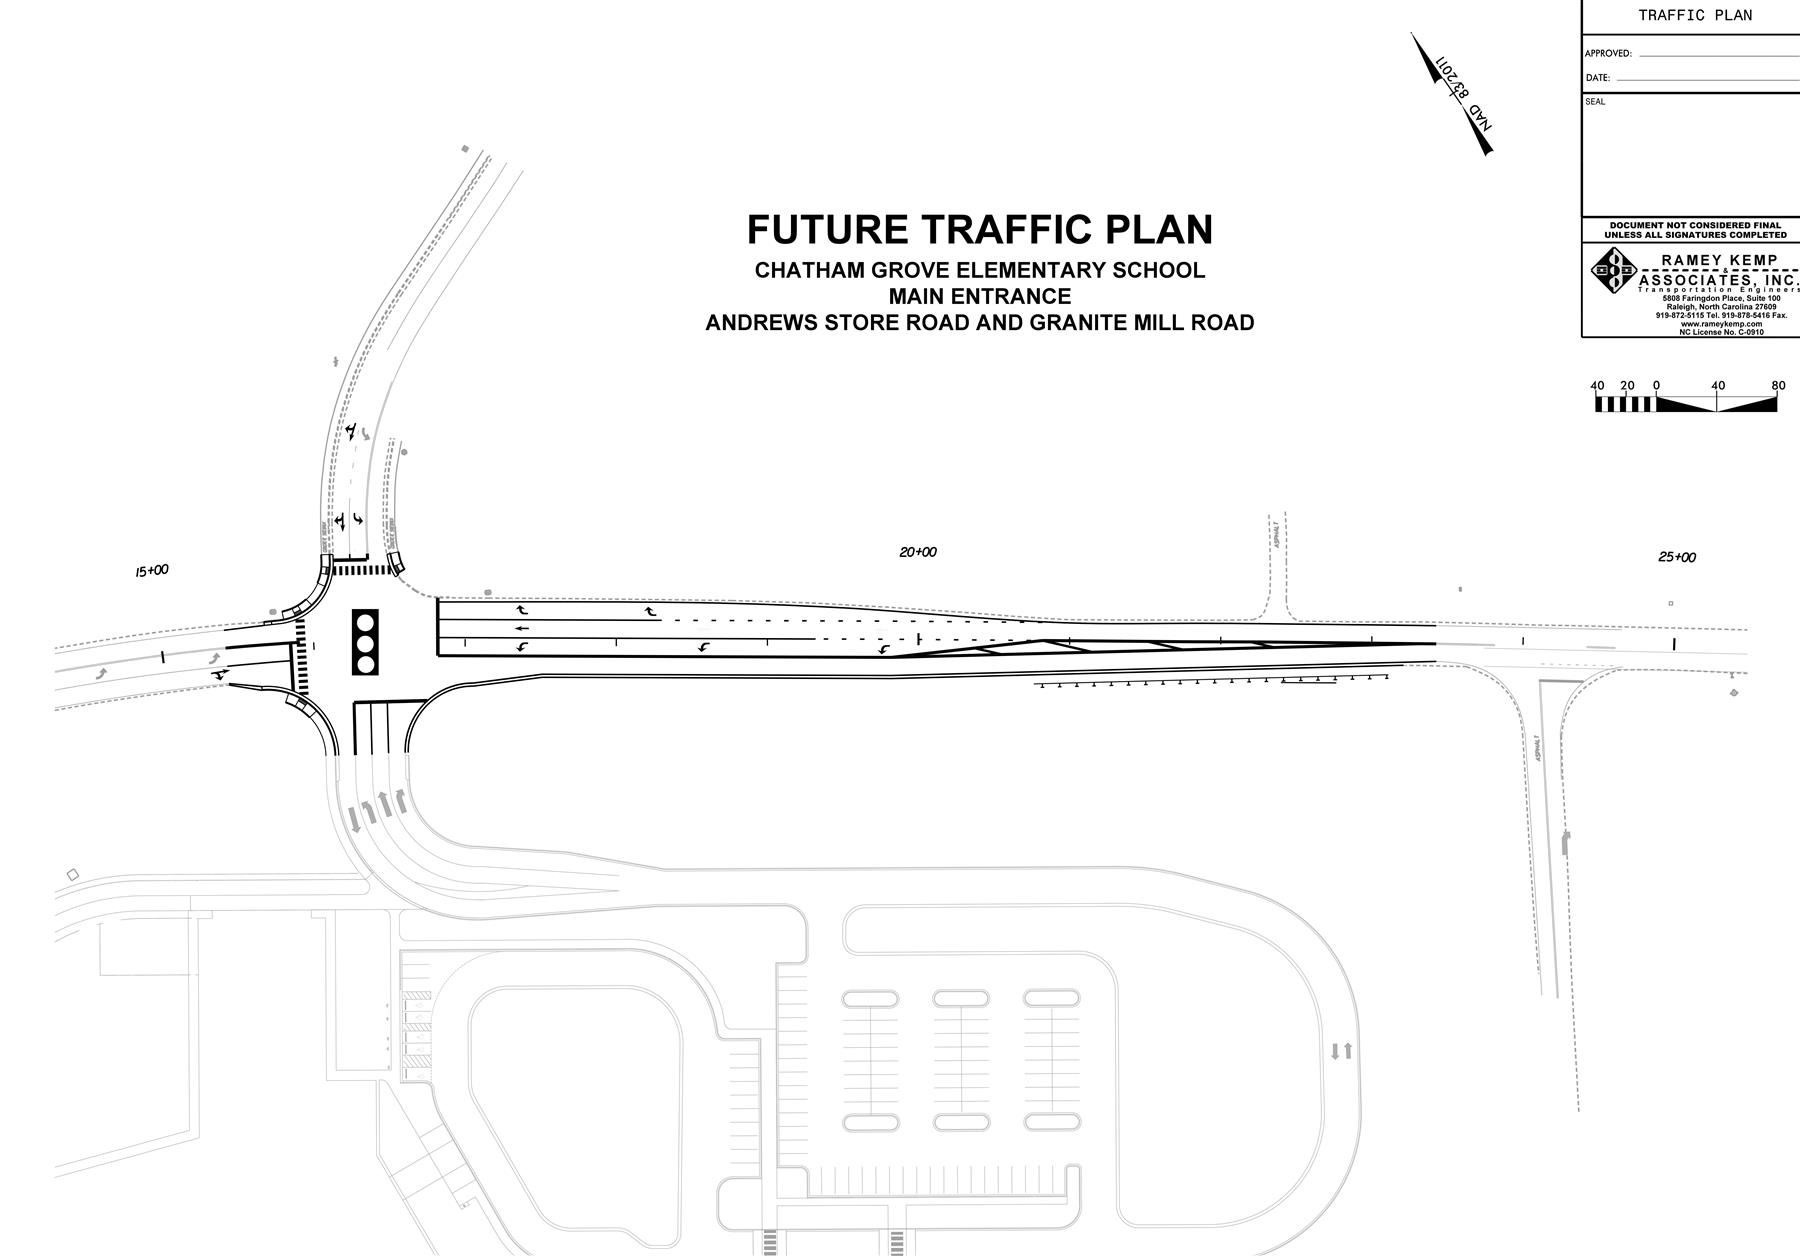 This is the pending traffic plan for Andrews Store Road, where Chatham Grove Elementary School is scheduled to open in  2020.